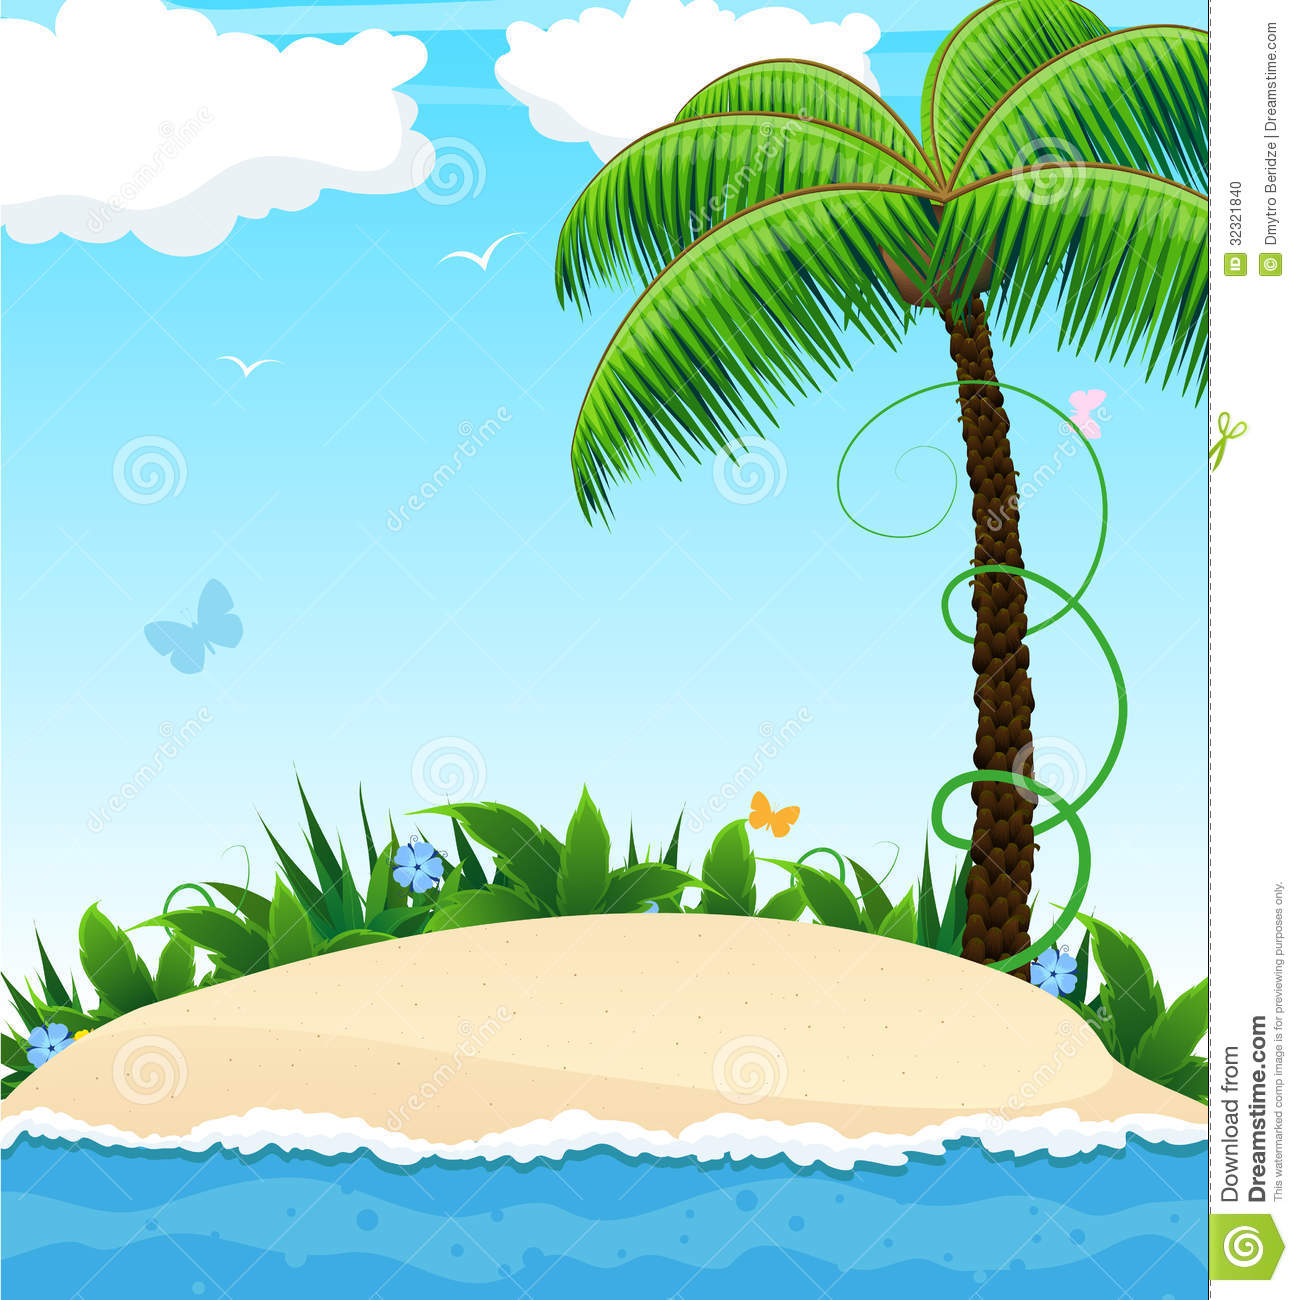 Palm Tree Island: Small Island With A Palm Tree Stock Vector